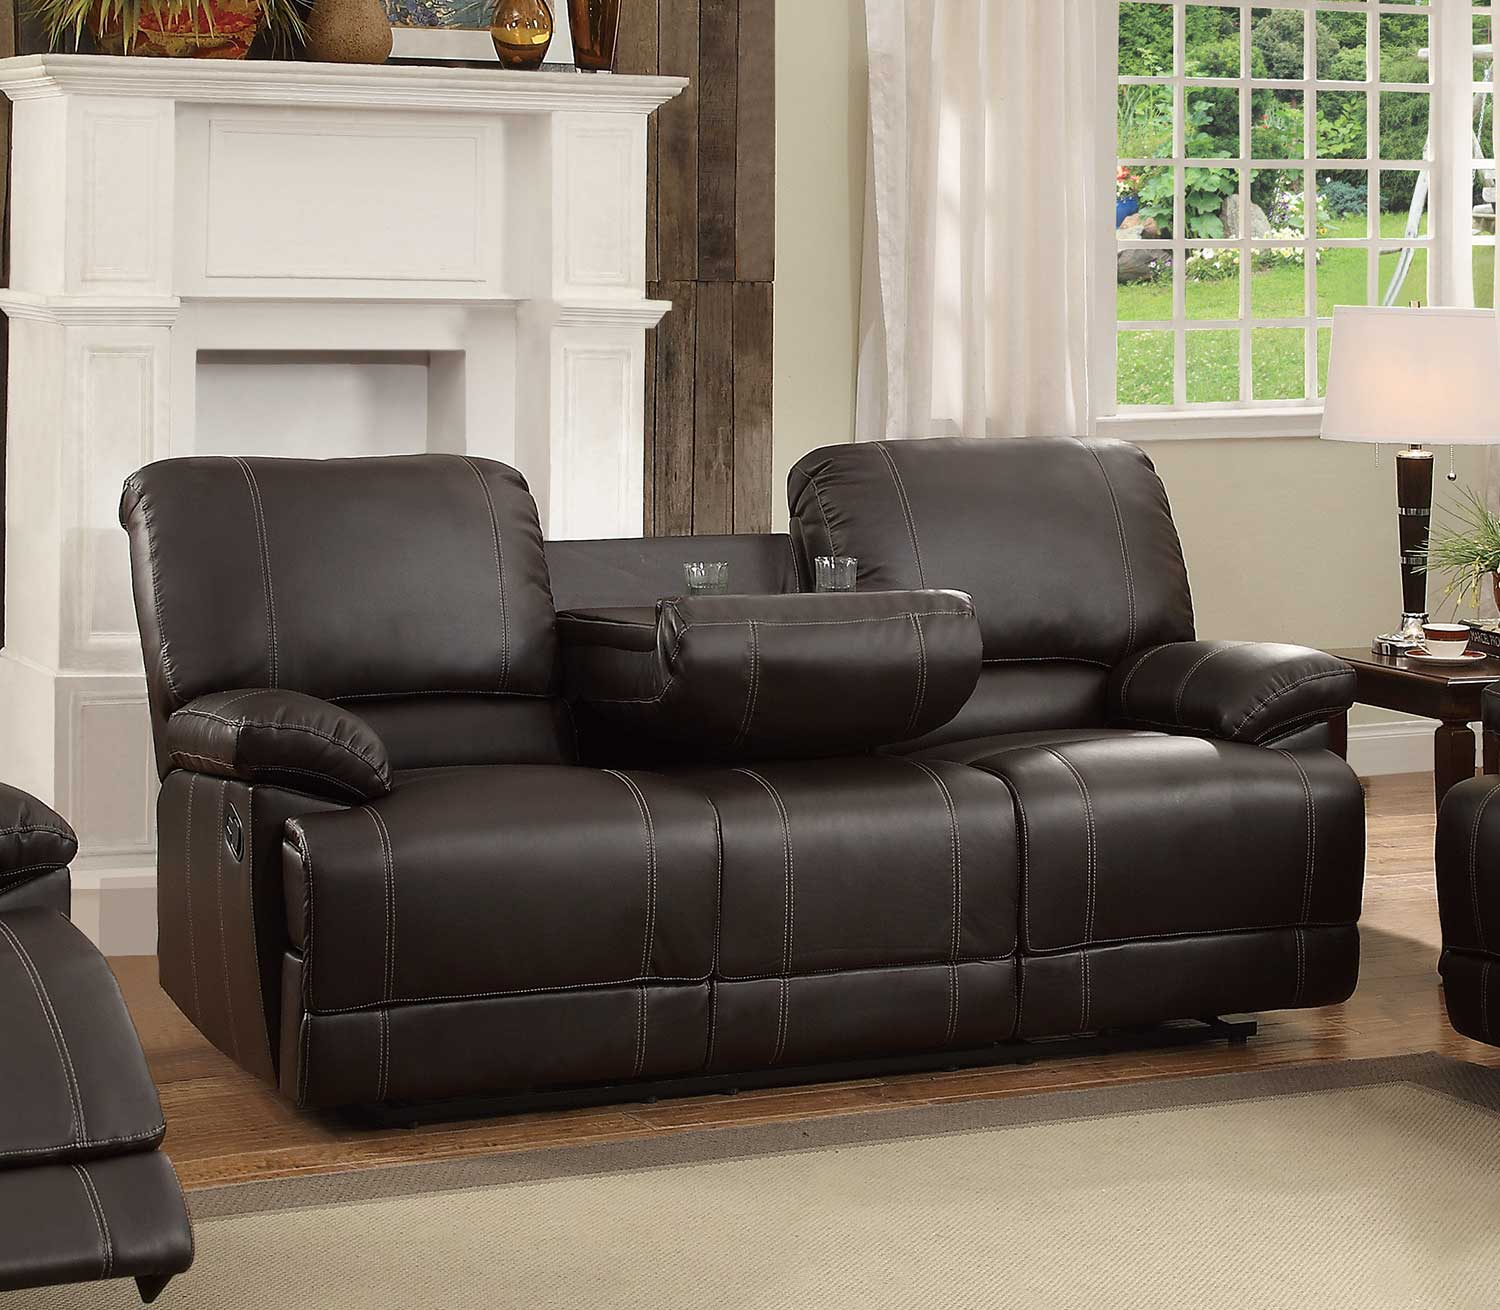 Homelegance Cassville Double Reclining Sofa with Center Drop-Down Cup Holders - Dark Brown